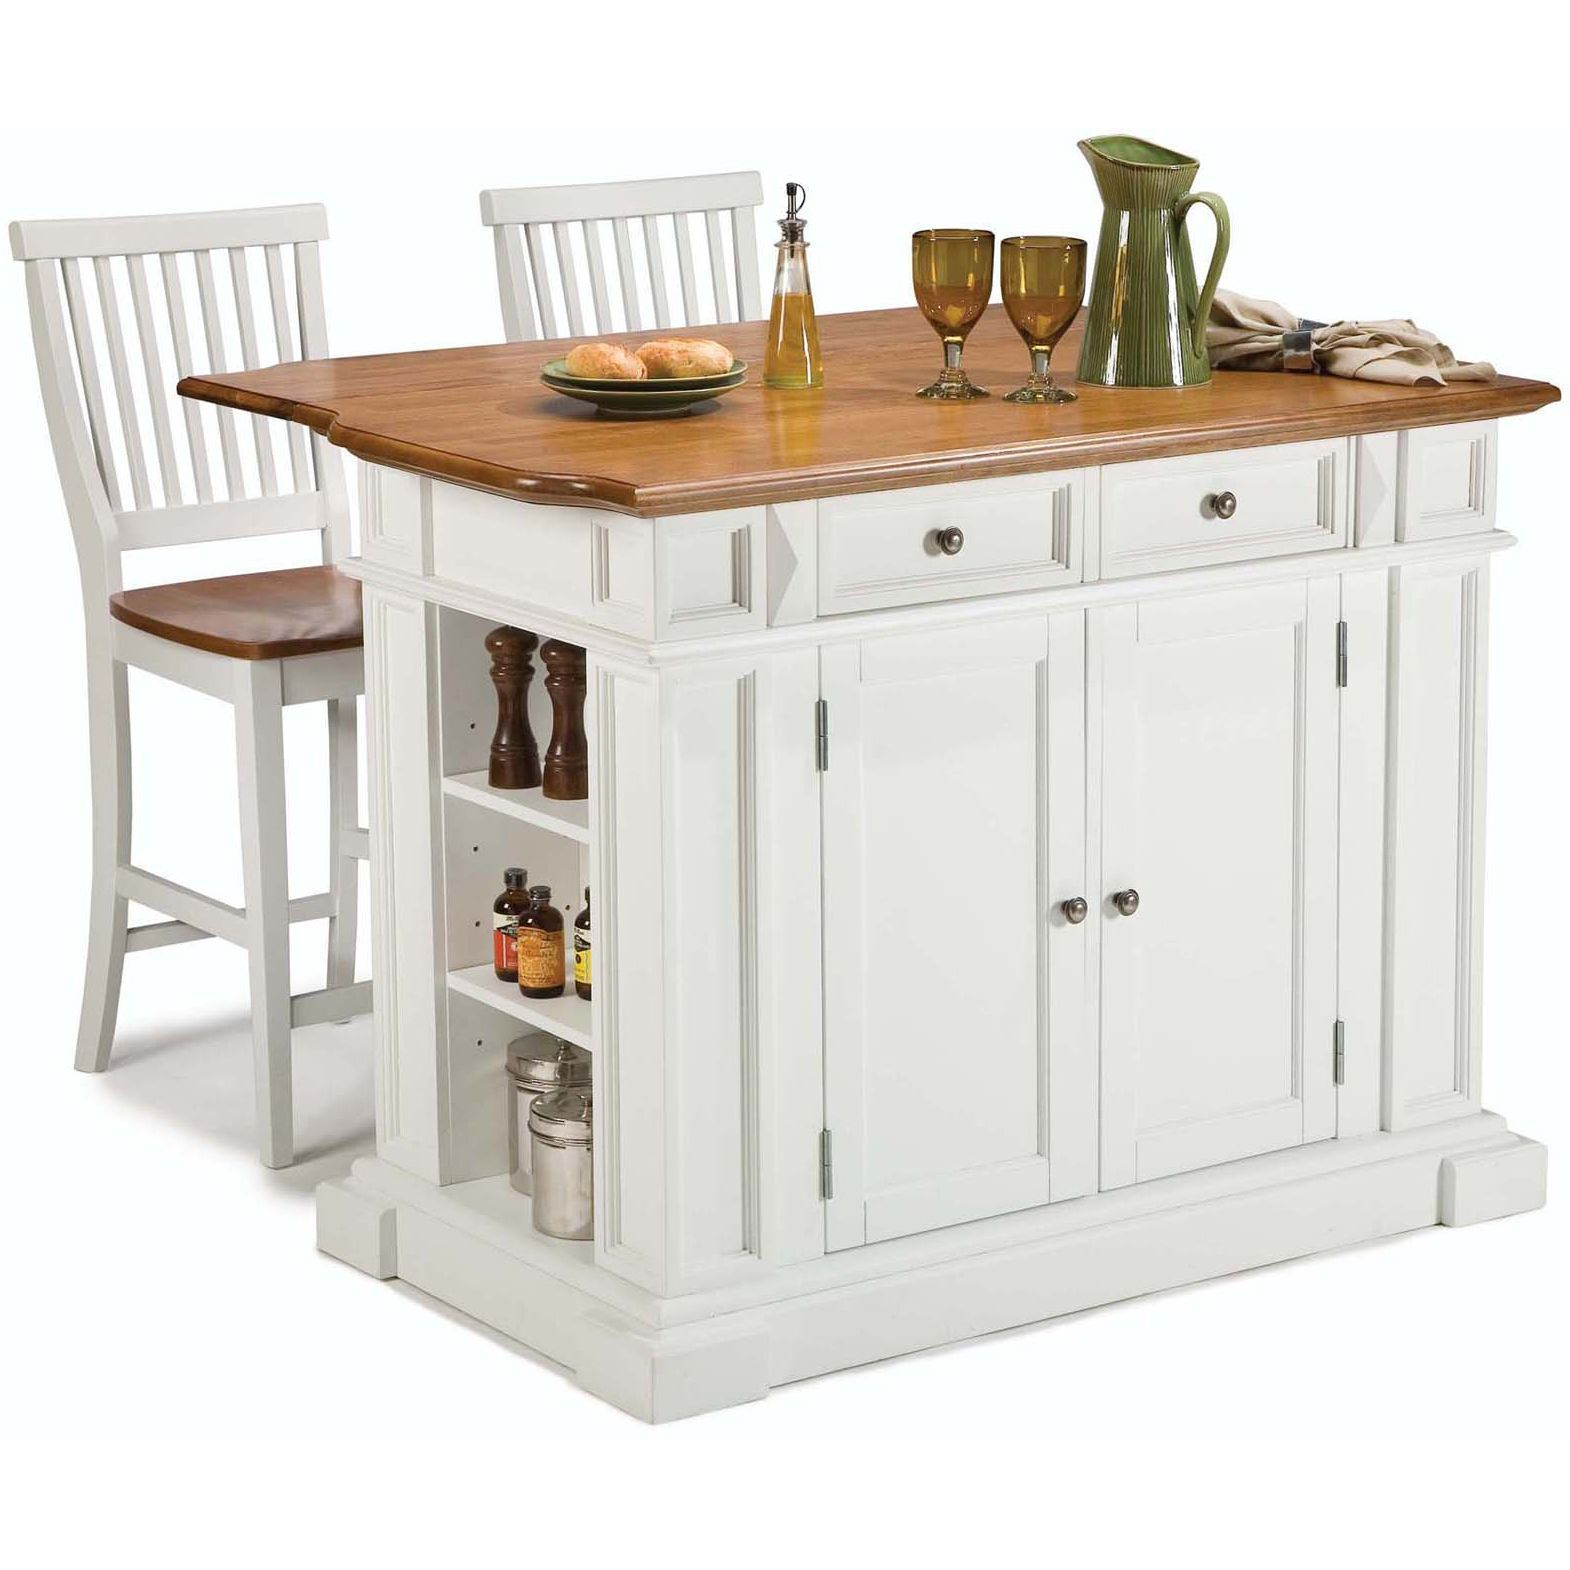 Mobile kitchen island  White Distressed Oak Kitchen Island and Bar Stools by Home Styles